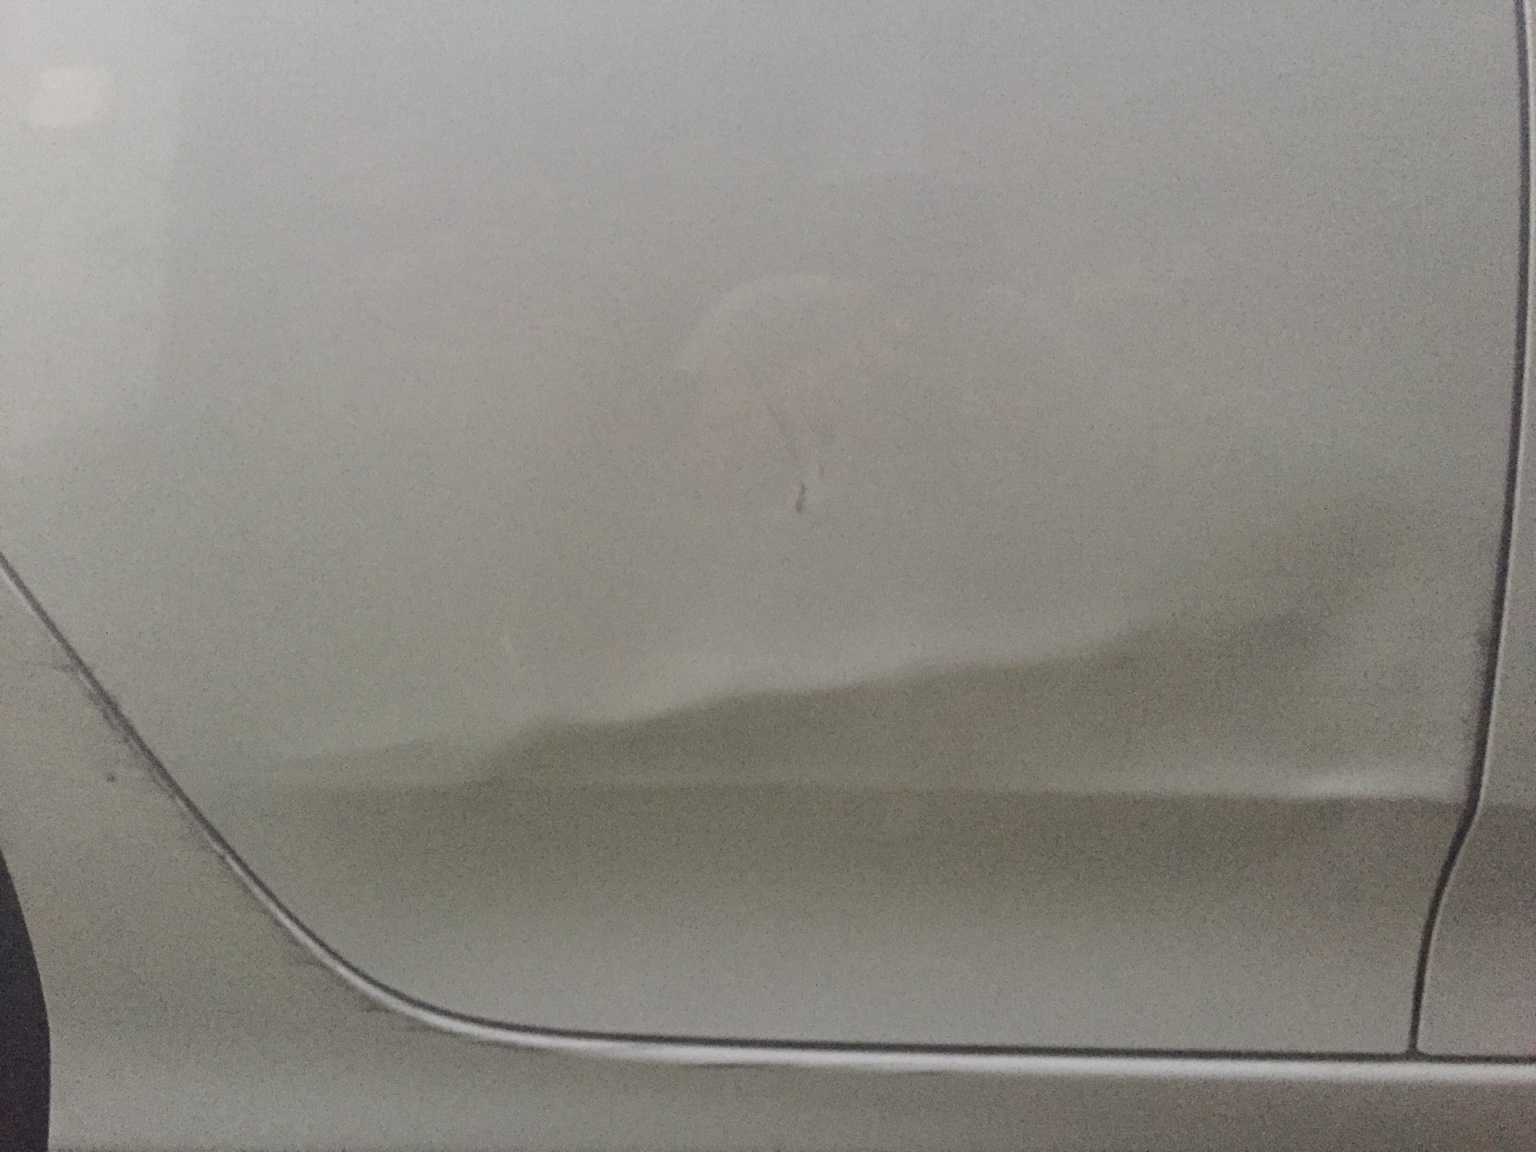 Honda City Dent (Suggest what to do) - 40c89e8ea829f57e20e1e761d50c3eb9